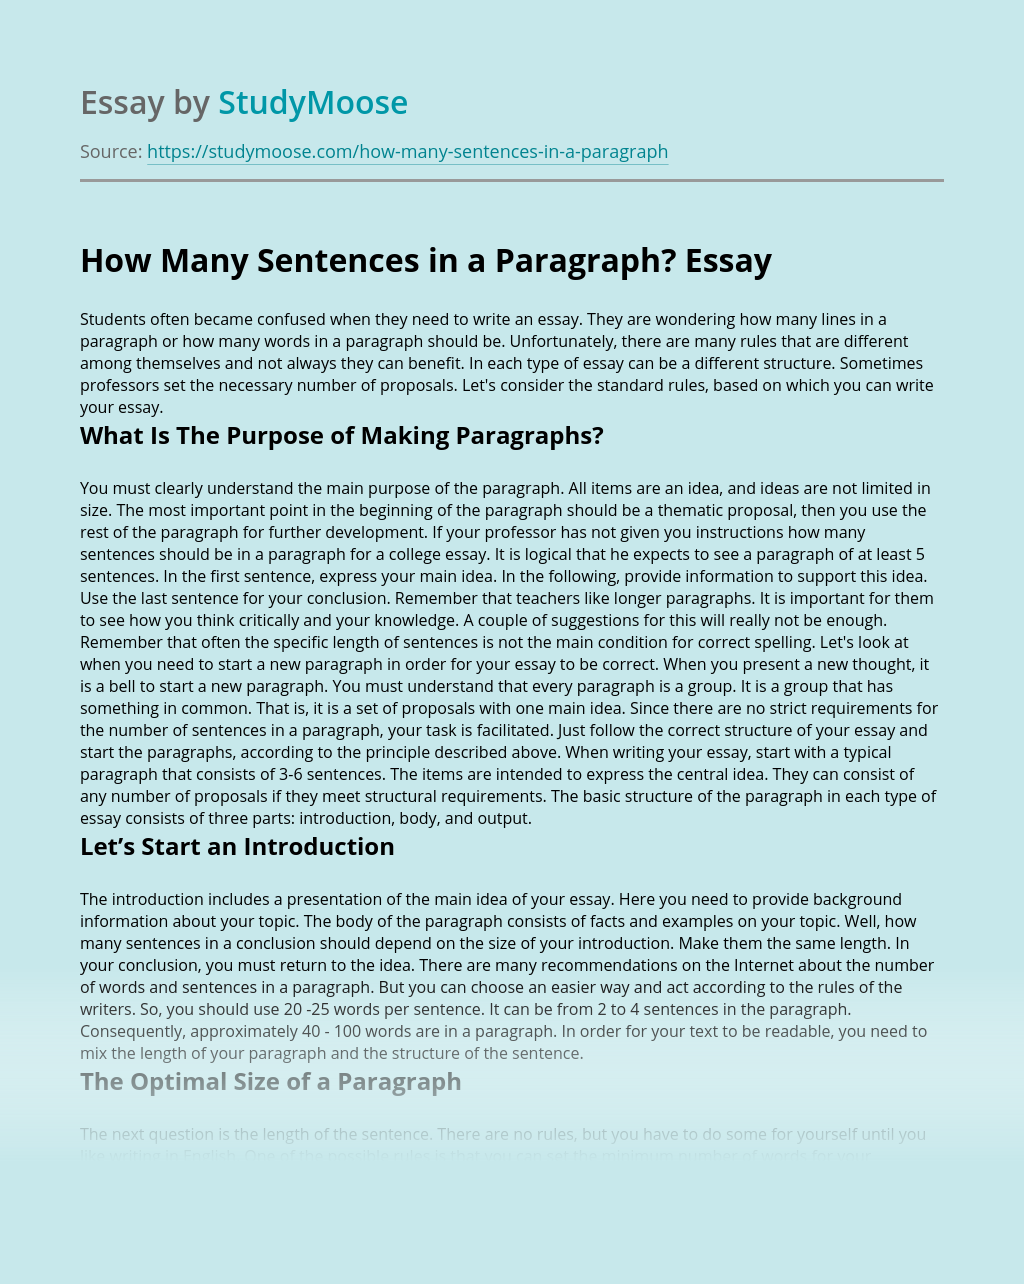 How Many Sentences in a Paragraph?